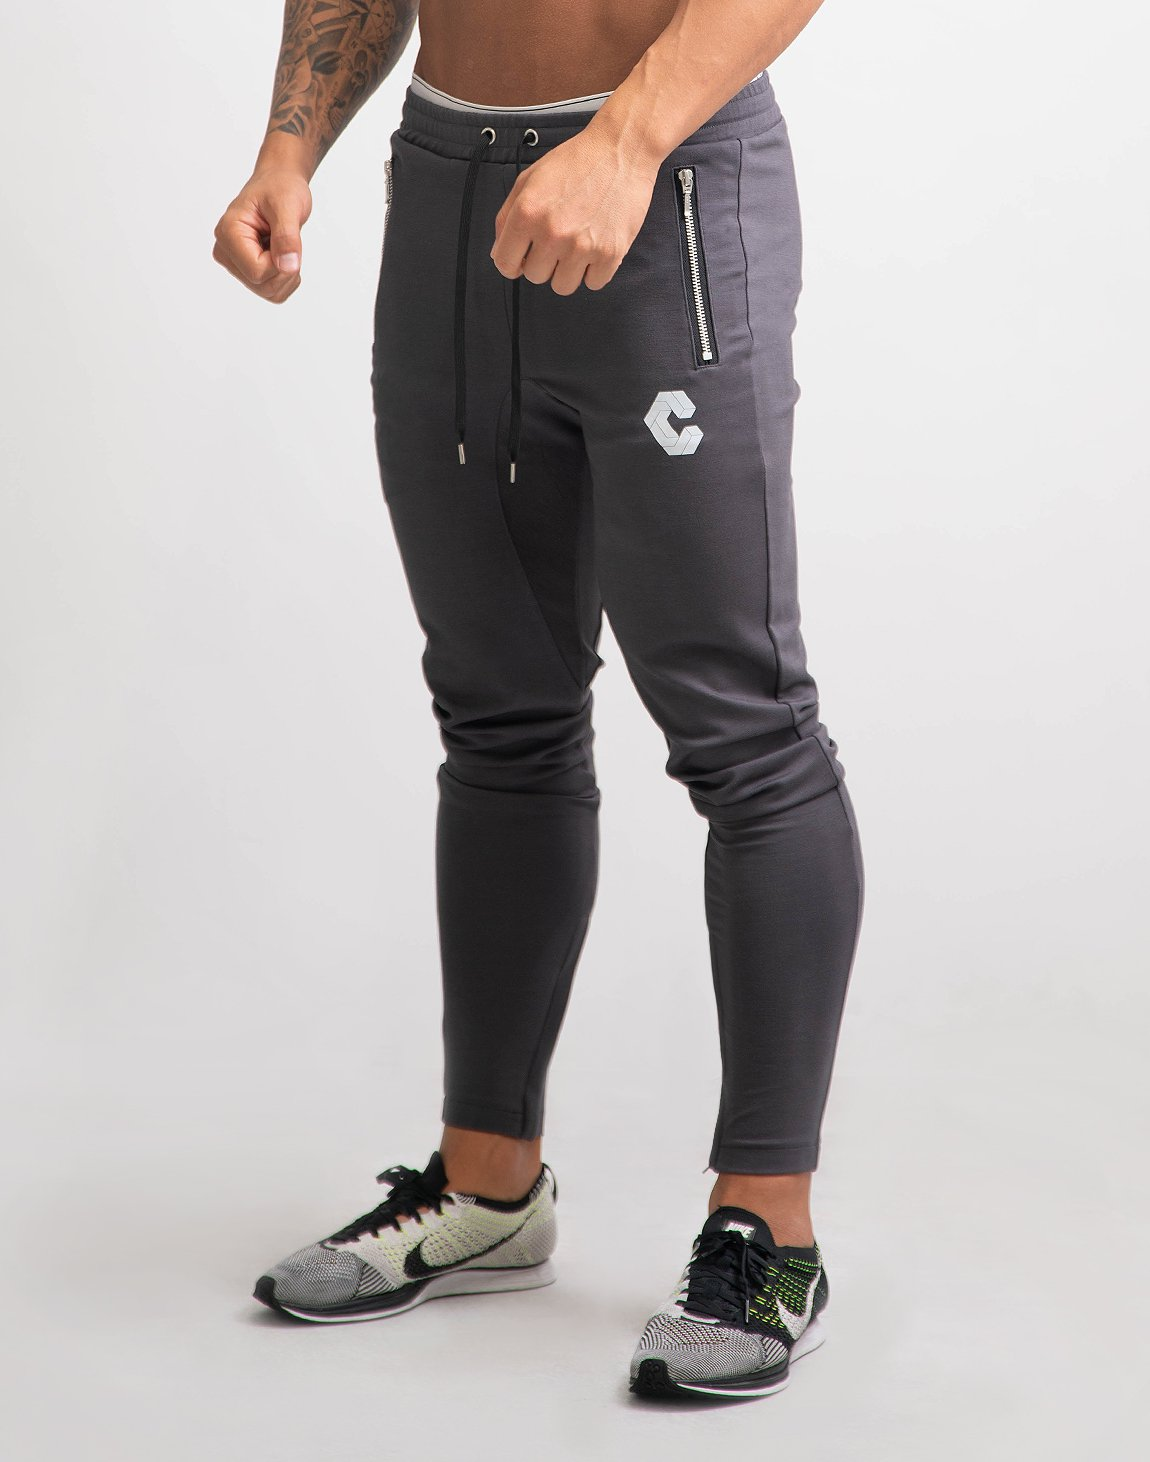 <img class='new_mark_img1' src='//img.shop-pro.jp/img/new/icons1.gif' style='border:none;display:inline;margin:0px;padding:0px;width:auto;' />MODE Sweat Pants 02 Ver2 D-Gray